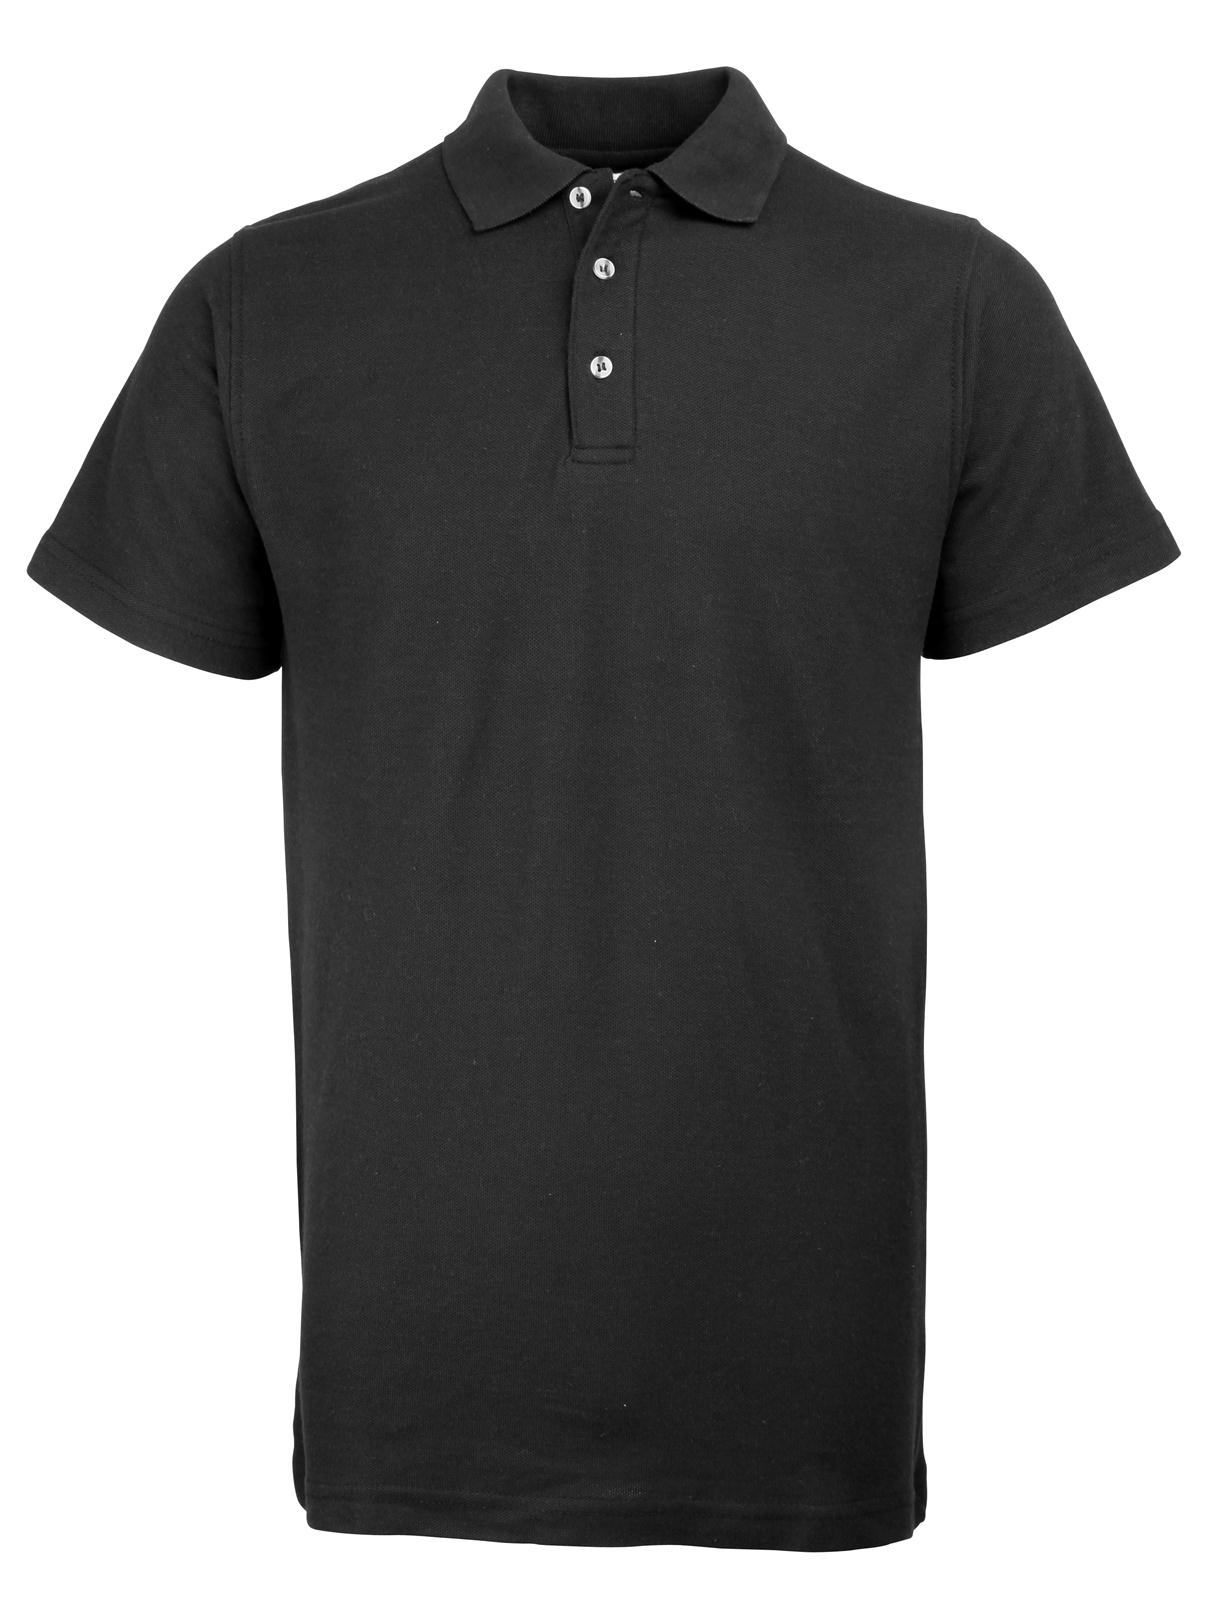 New rty mens work wear heavy polycotton pique polo shirt for Mens work polo shirts